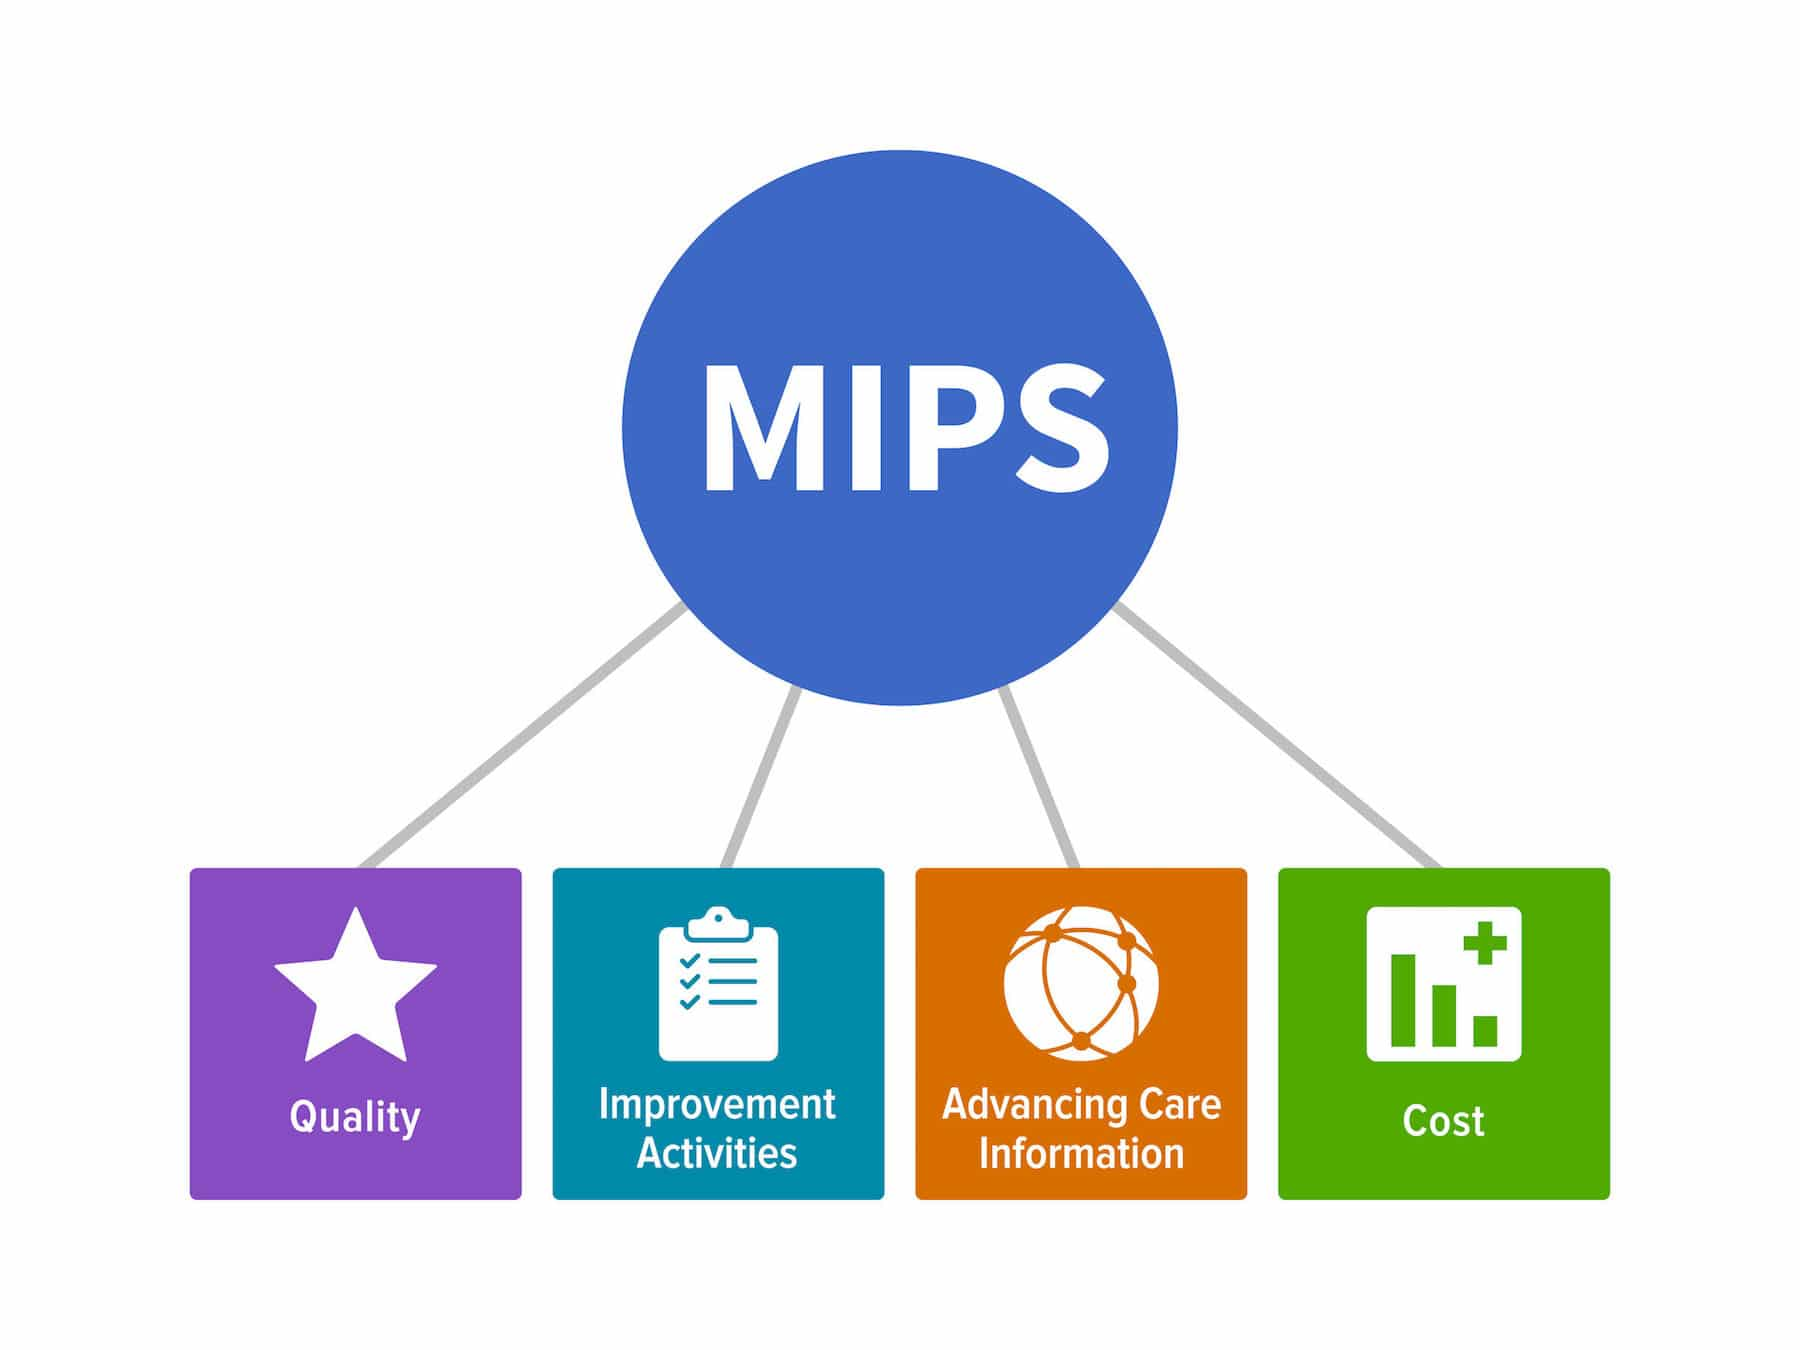 MIPs - merit-based incentive payment system